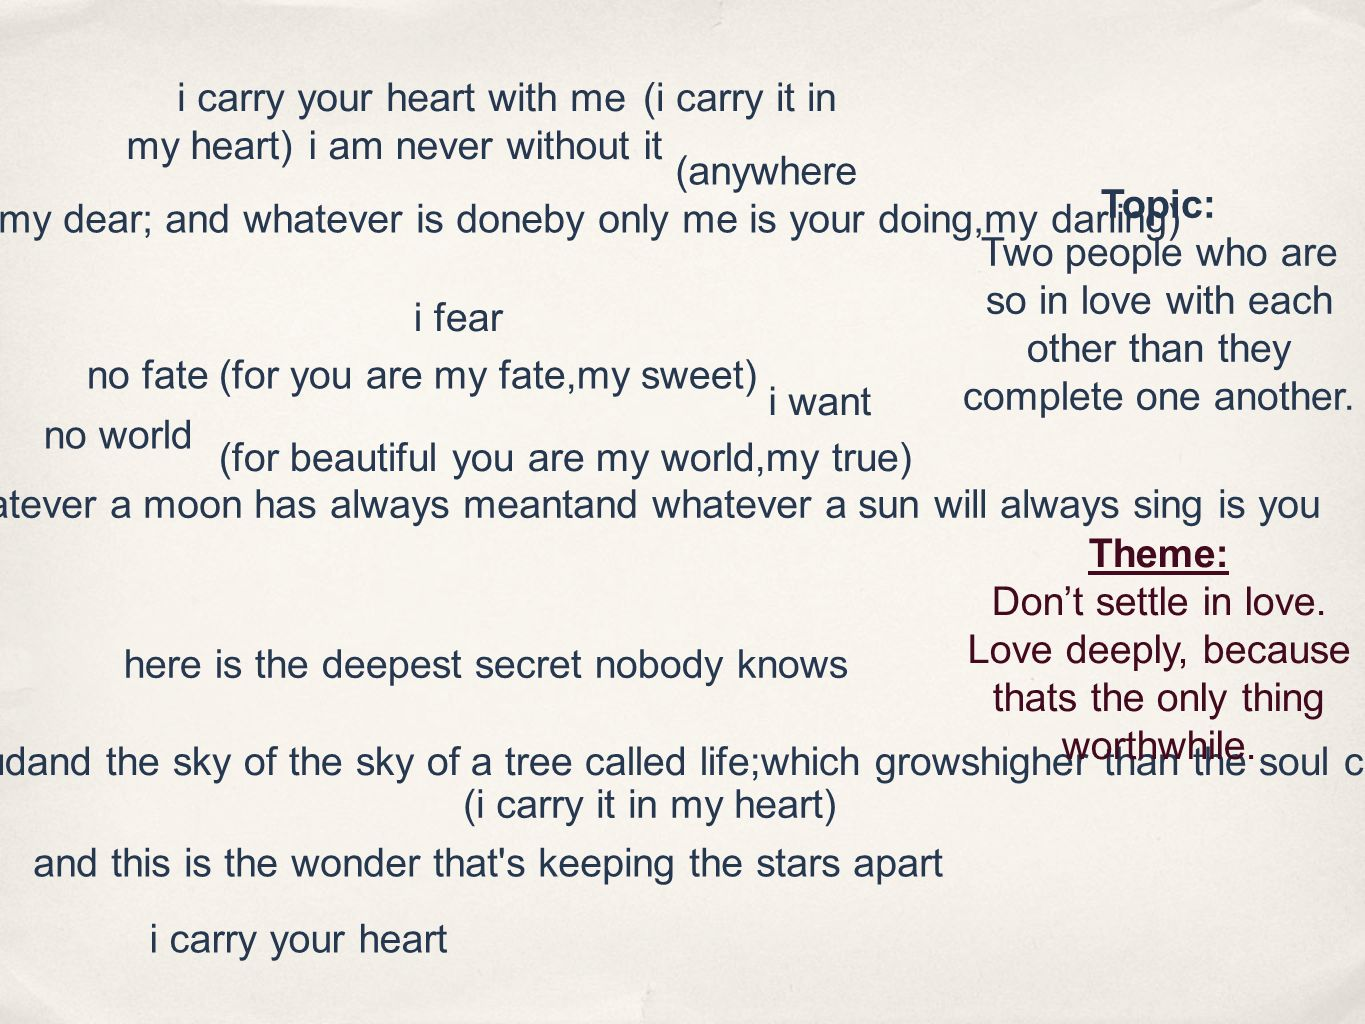 i carry your heart with me analysis line by line